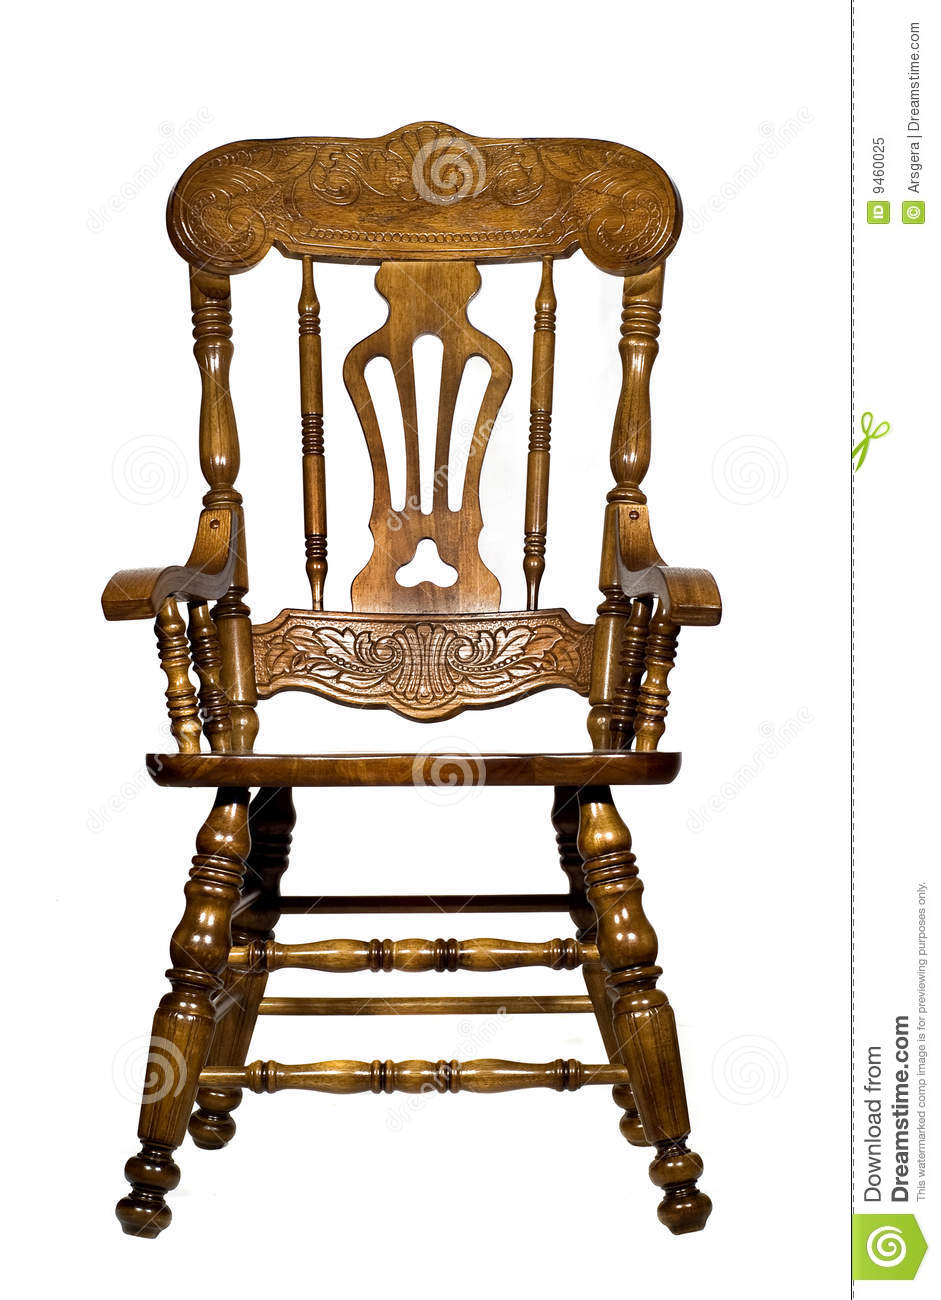 antique wooden chairs pictures office chair slipcover pattern front view stock image of lacquer